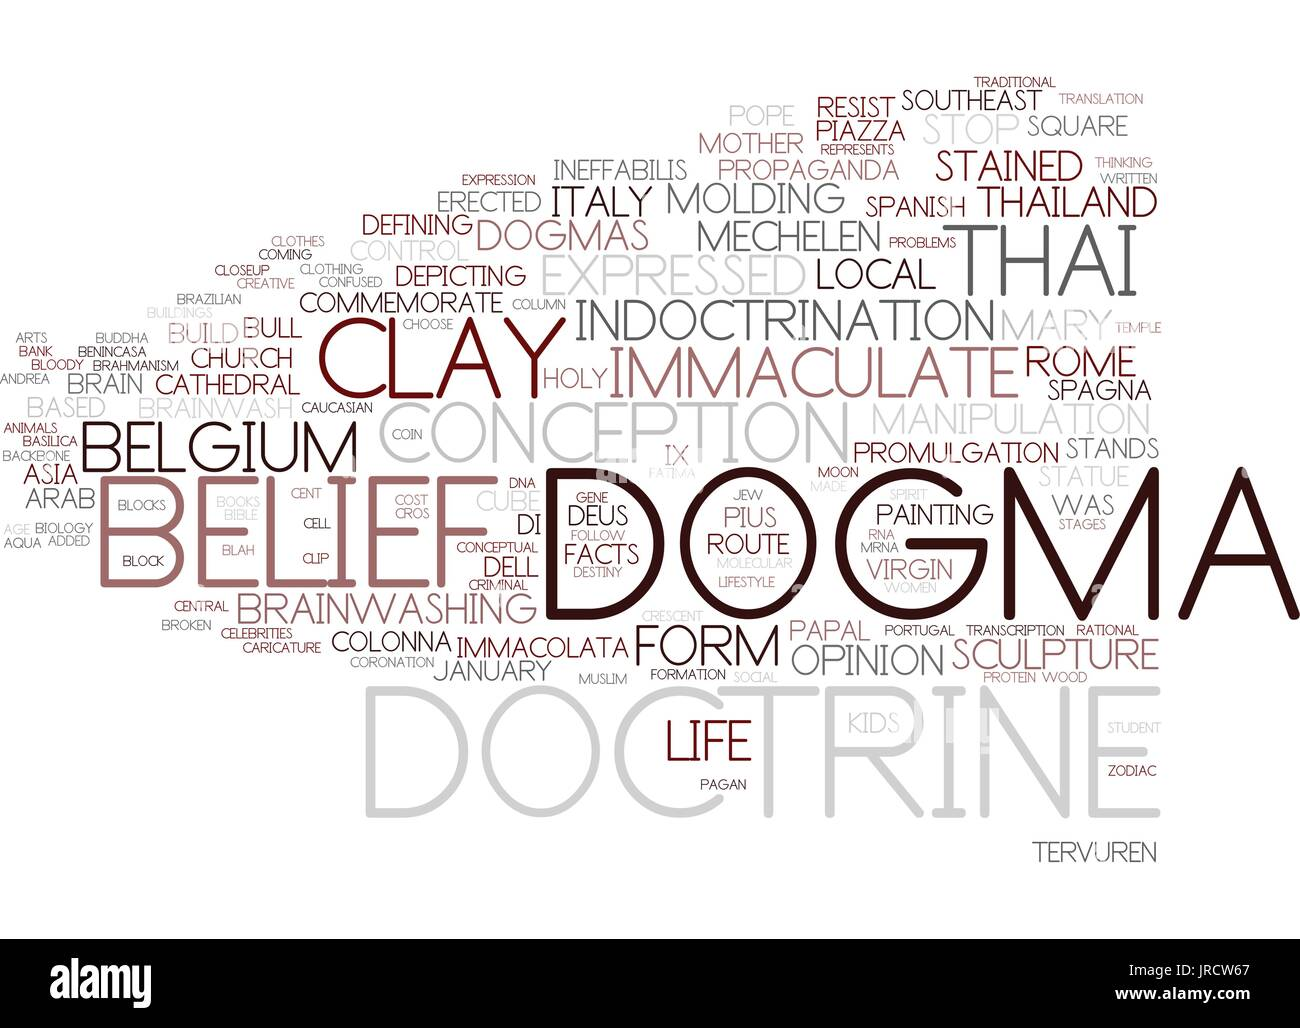 dogma word cloud concept - Stock Vector